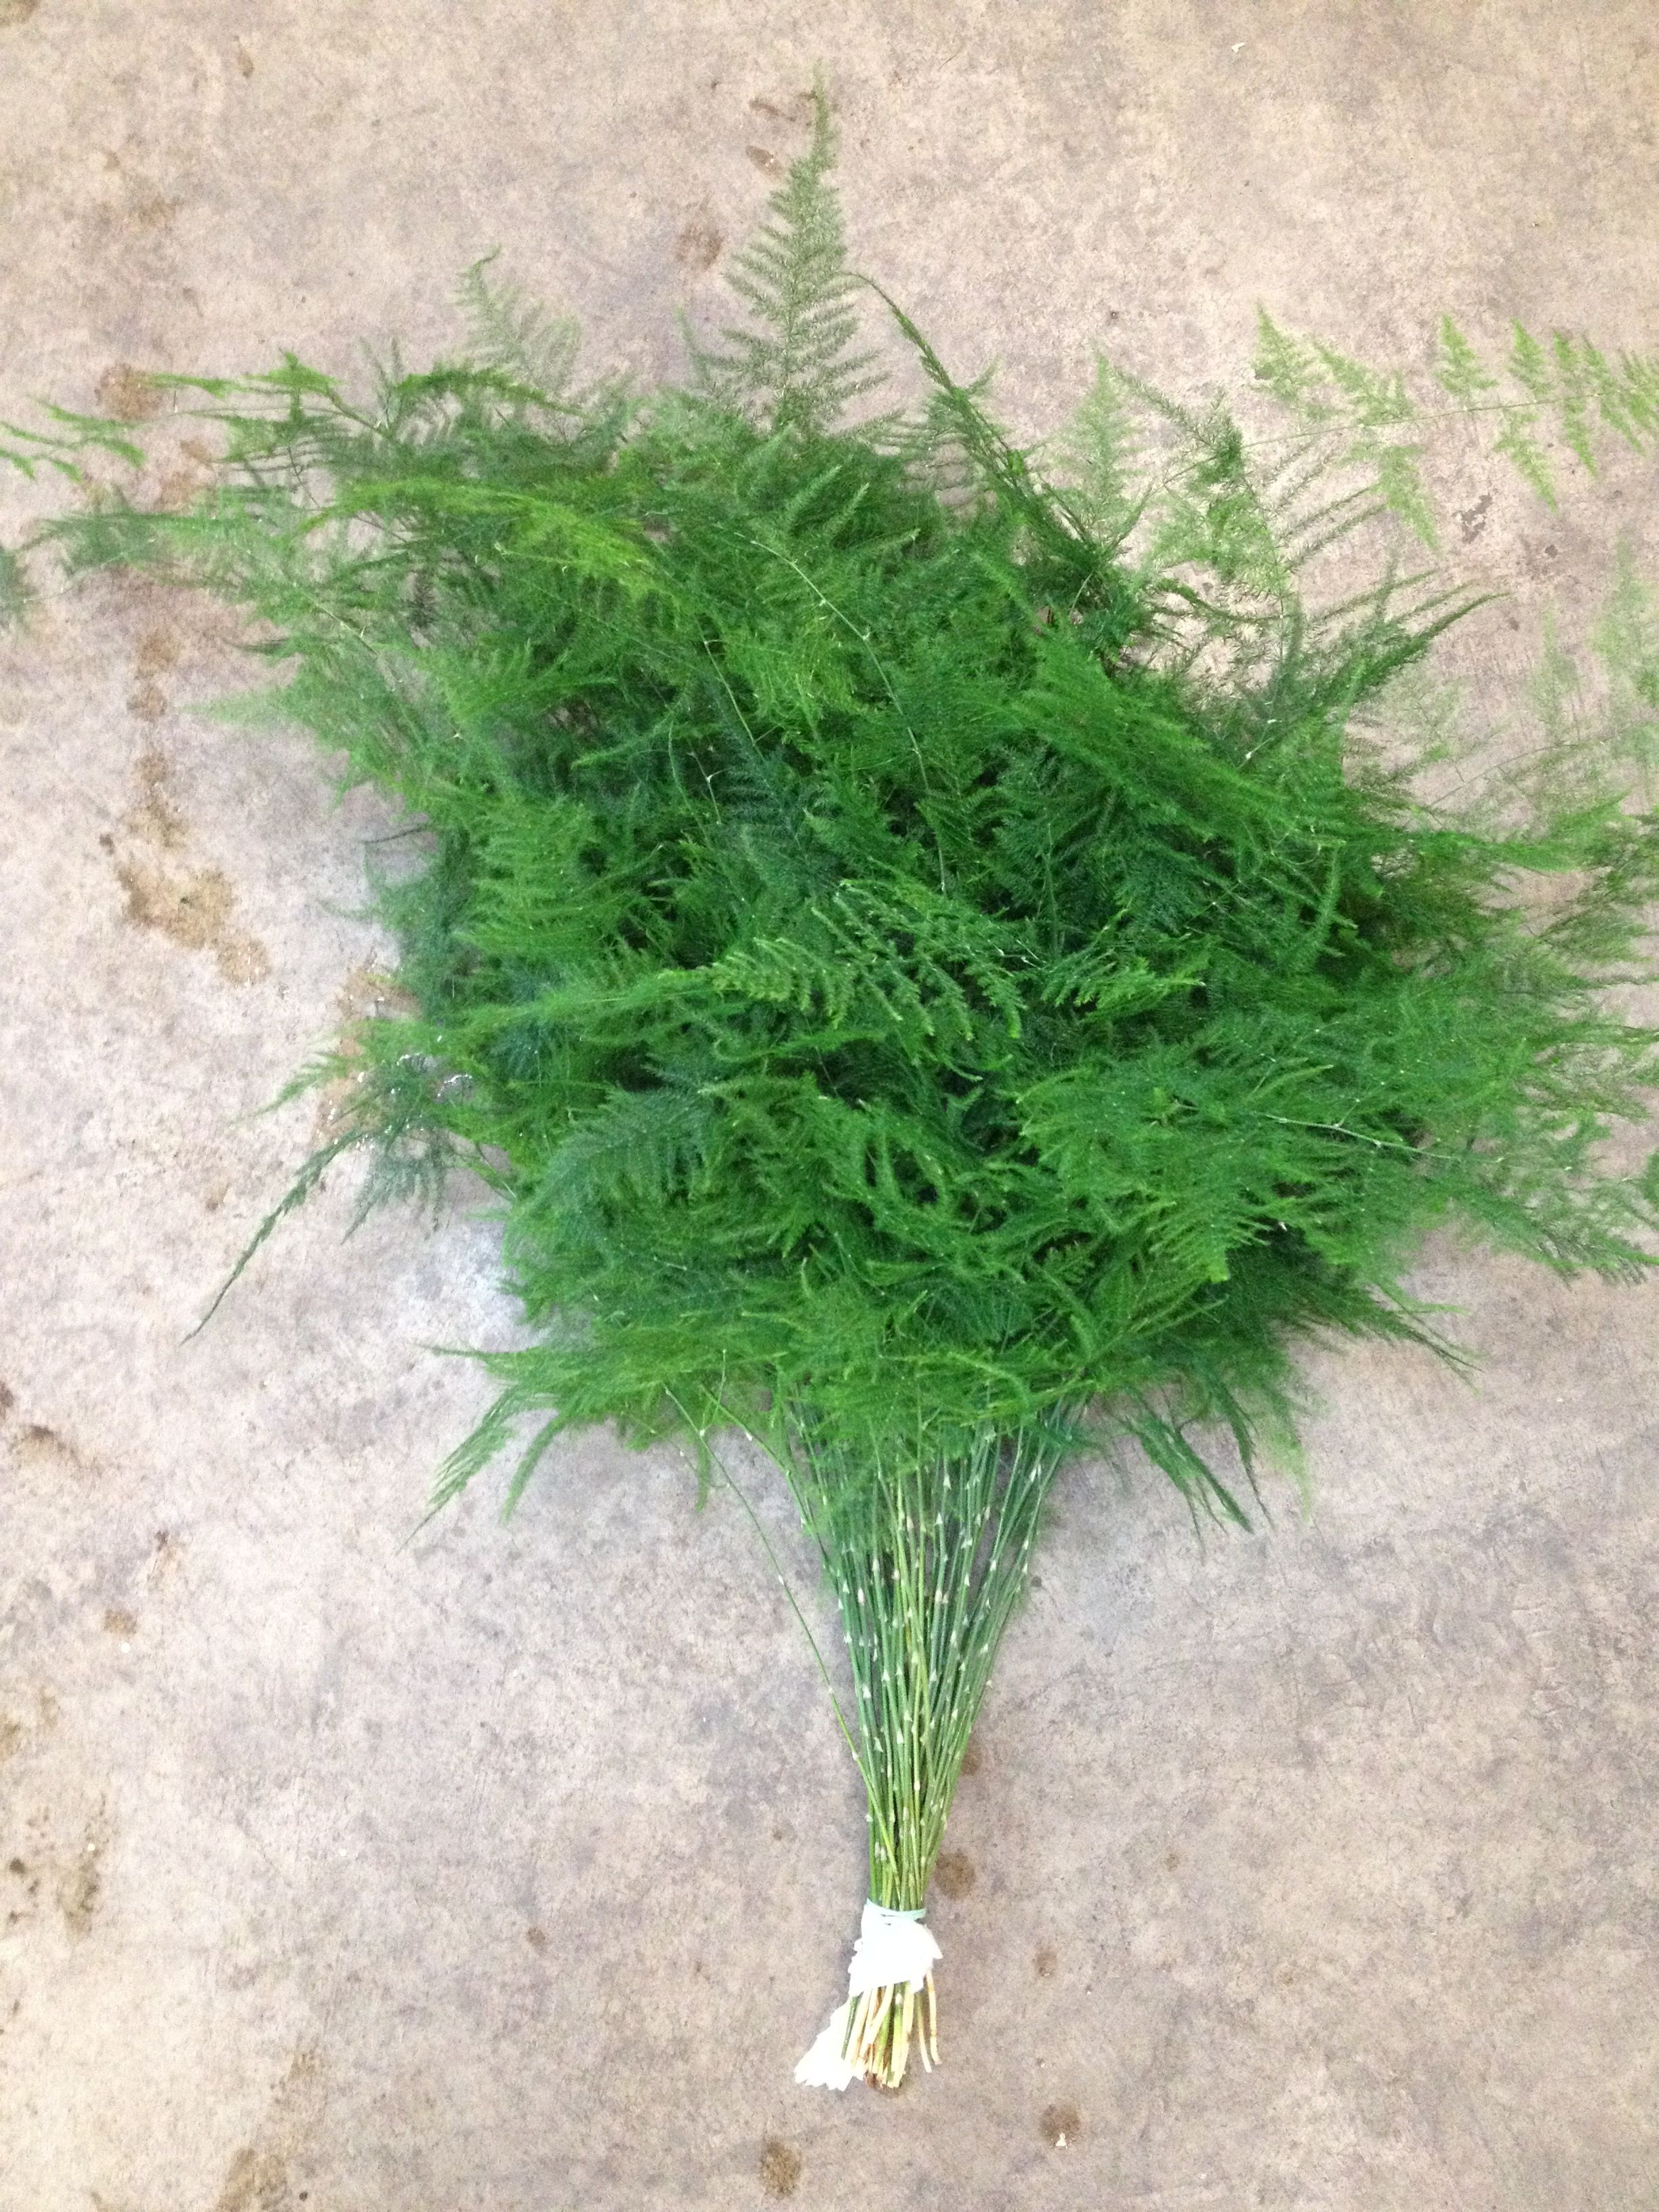 Wholesale Flowers For Weddings And Events Asparagus Fern Types Of Flowers July Wedding Flowers